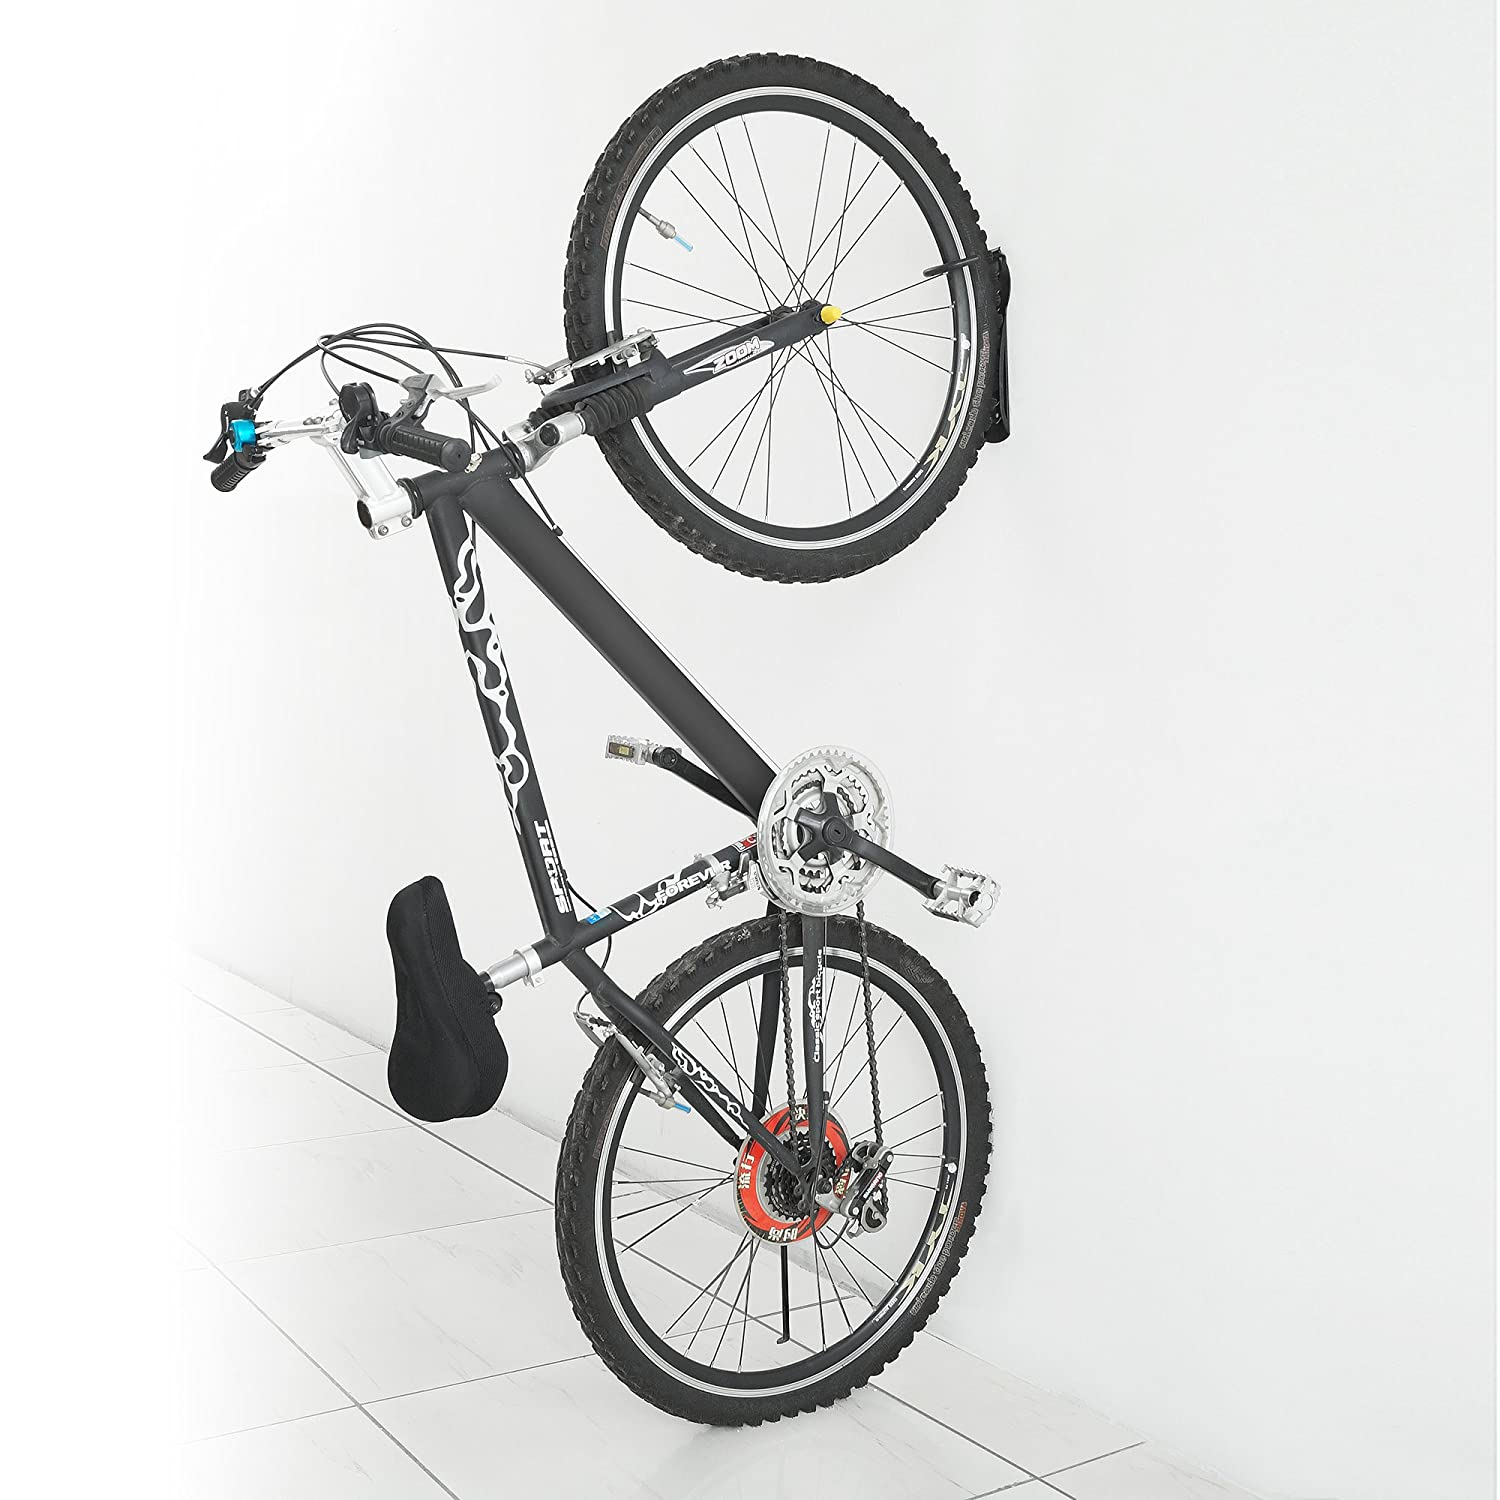 ceiling rack rubbed a bike floor stability signature and conserves provides with kits other pin capacity o lbs to for oakrak bikes space accessory add on mounted hand up plus excellent series finished